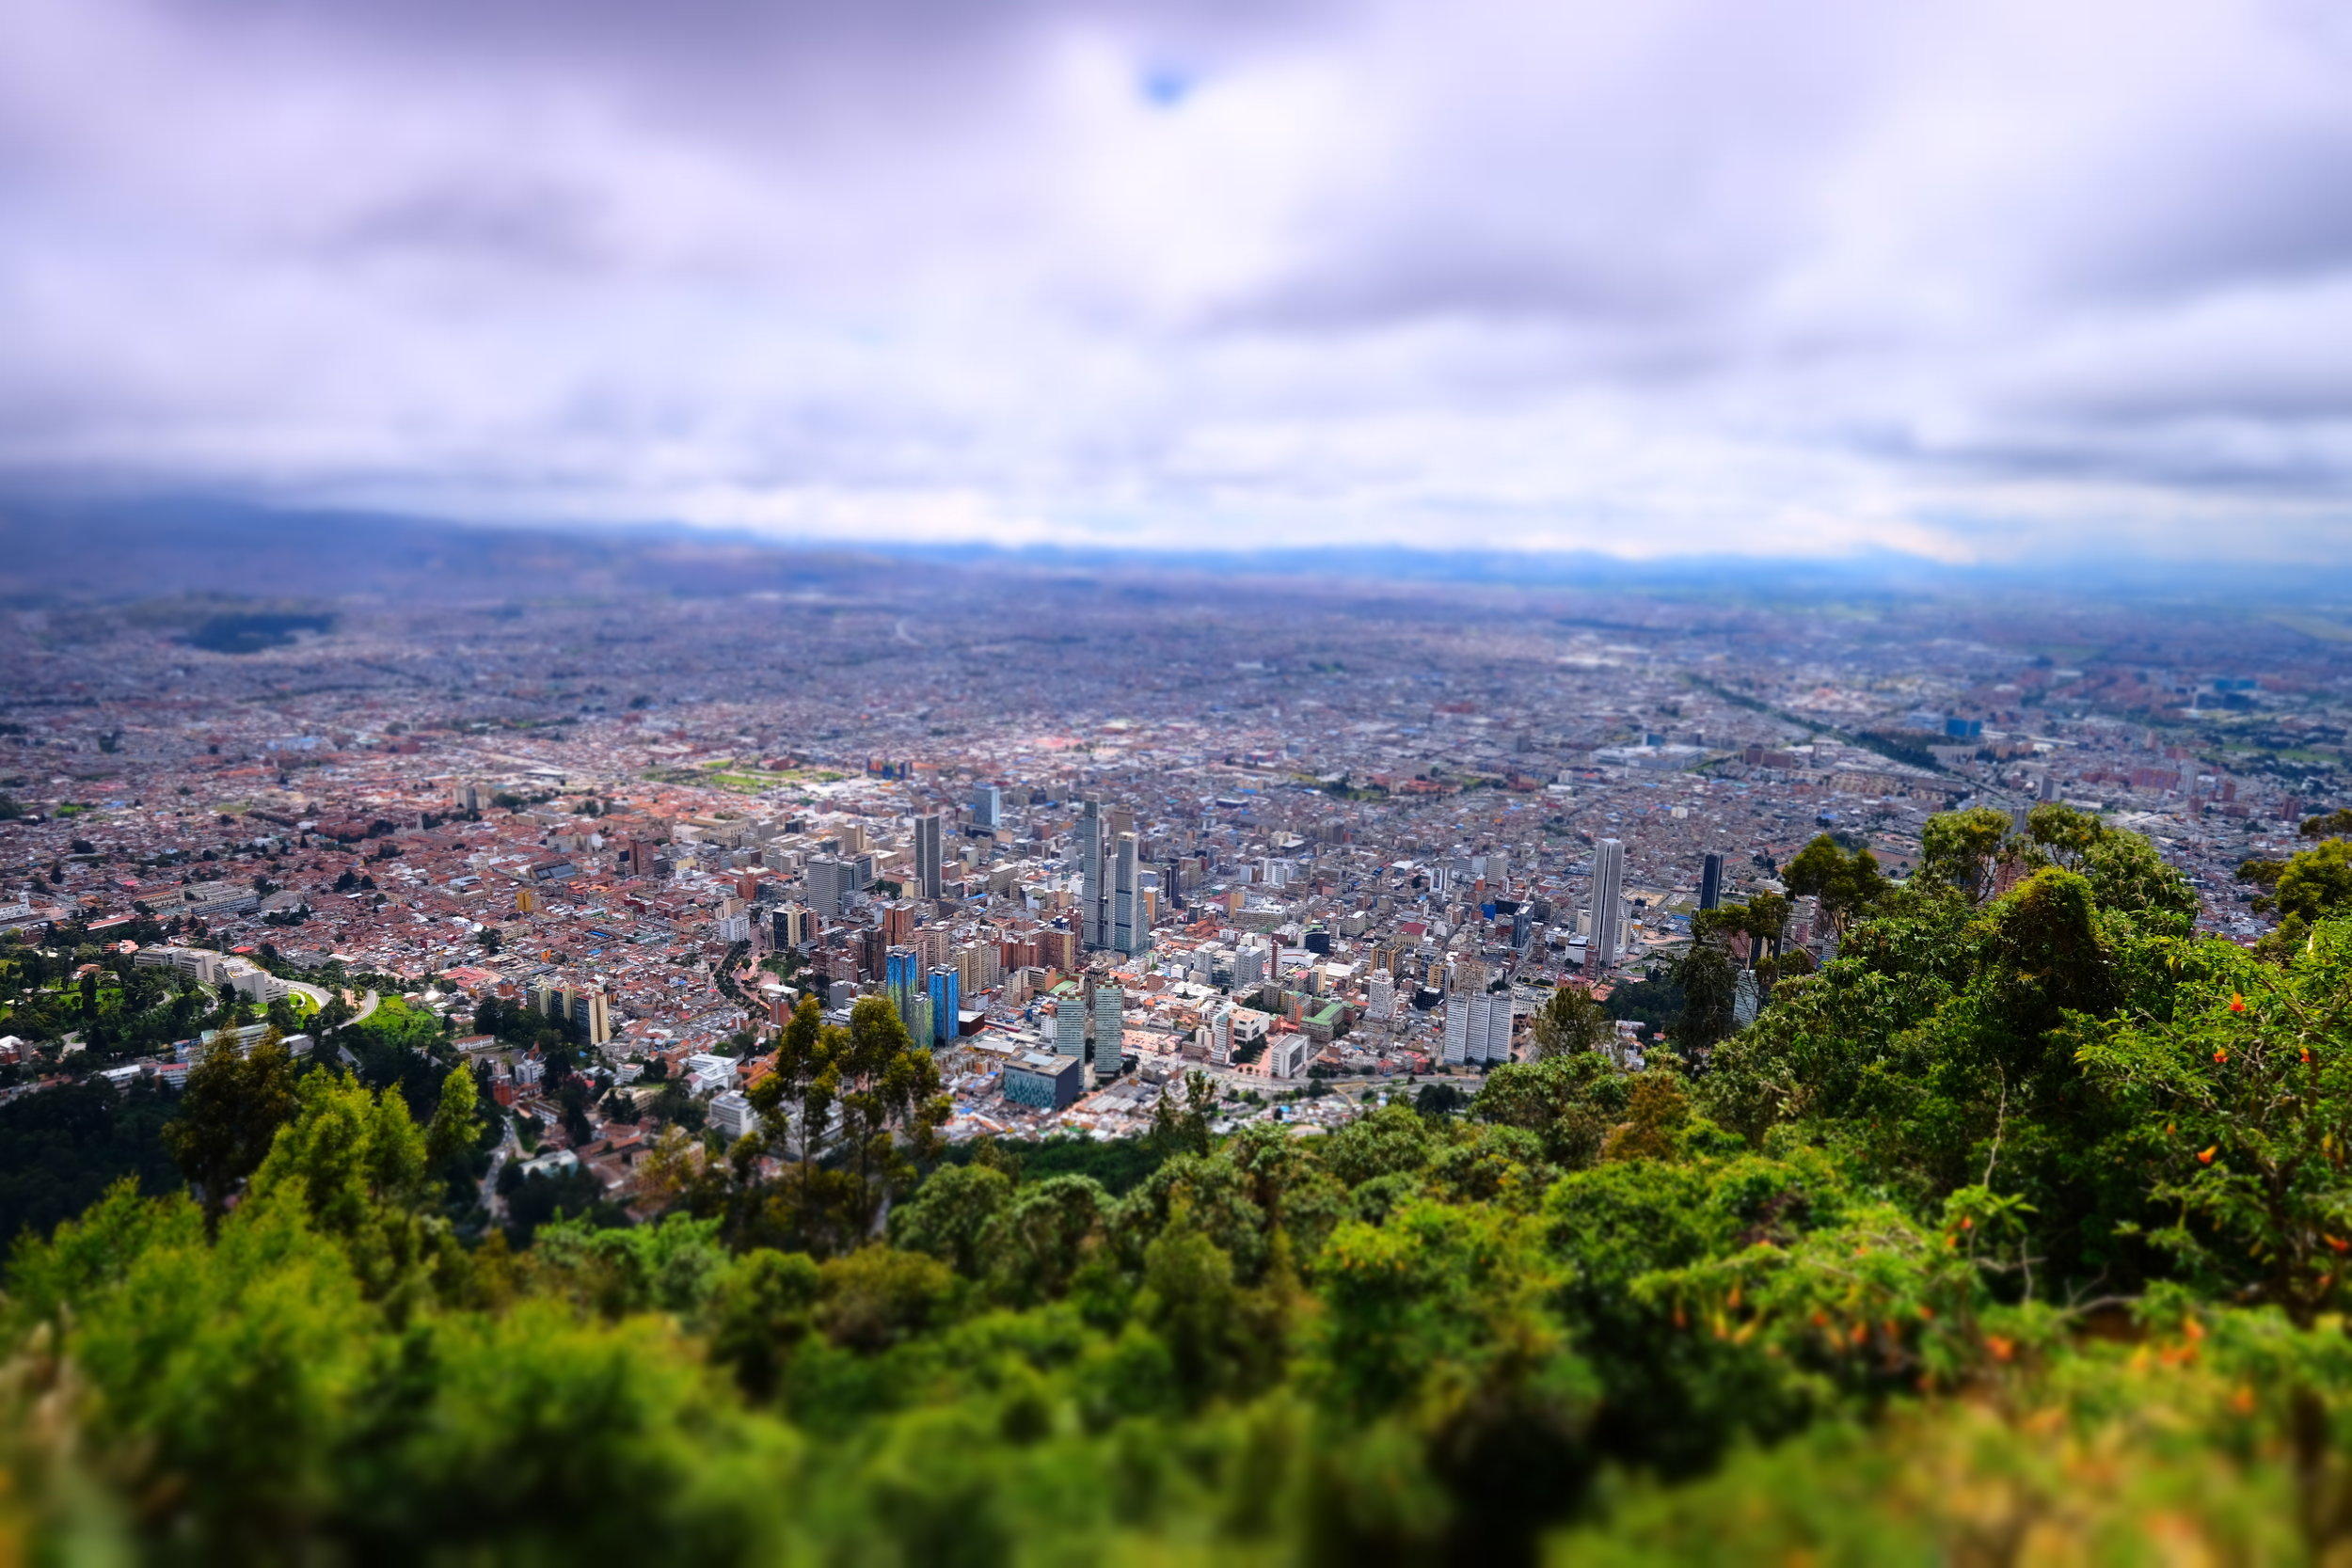 Bogota from Monserrate Mountain  Miniature Filter creating a blur on the top and bottom of the image